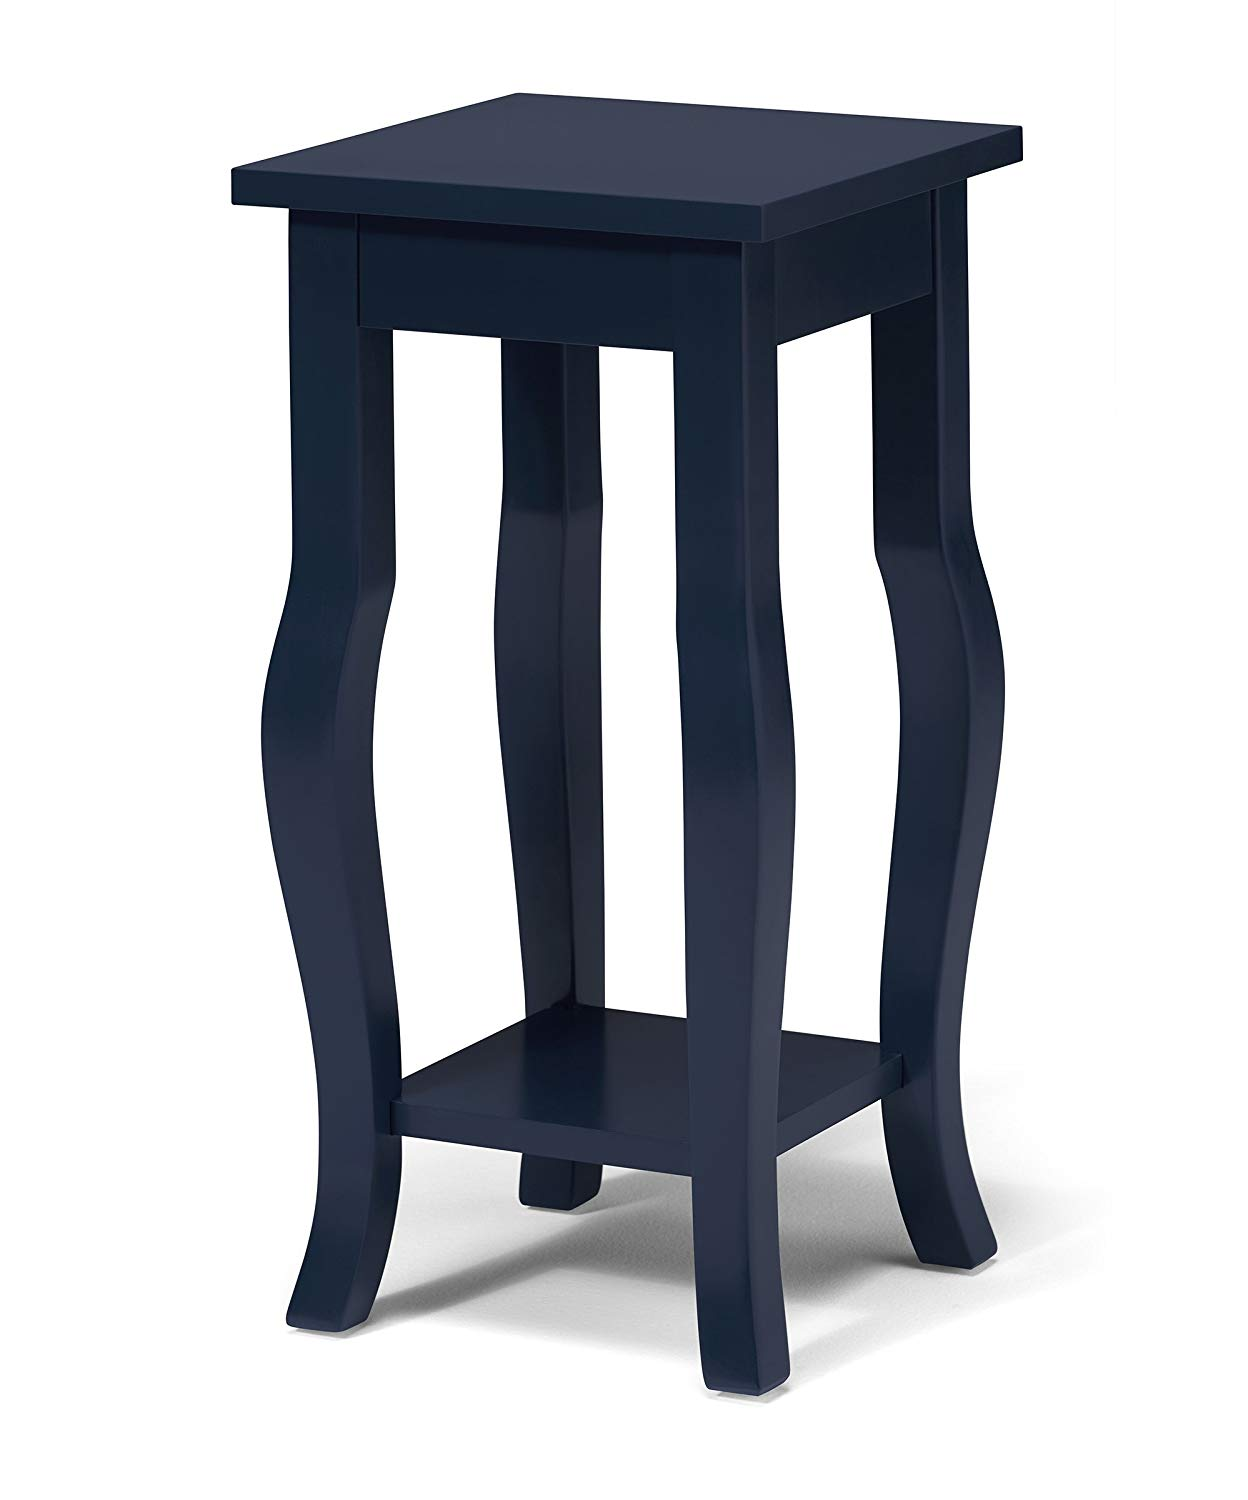 kate and laurel lillian wood pedestal end table curved navy blue legs with shelf kitchen dining big lots cups adjustable dog crate western magnolia home mirror legends furniture